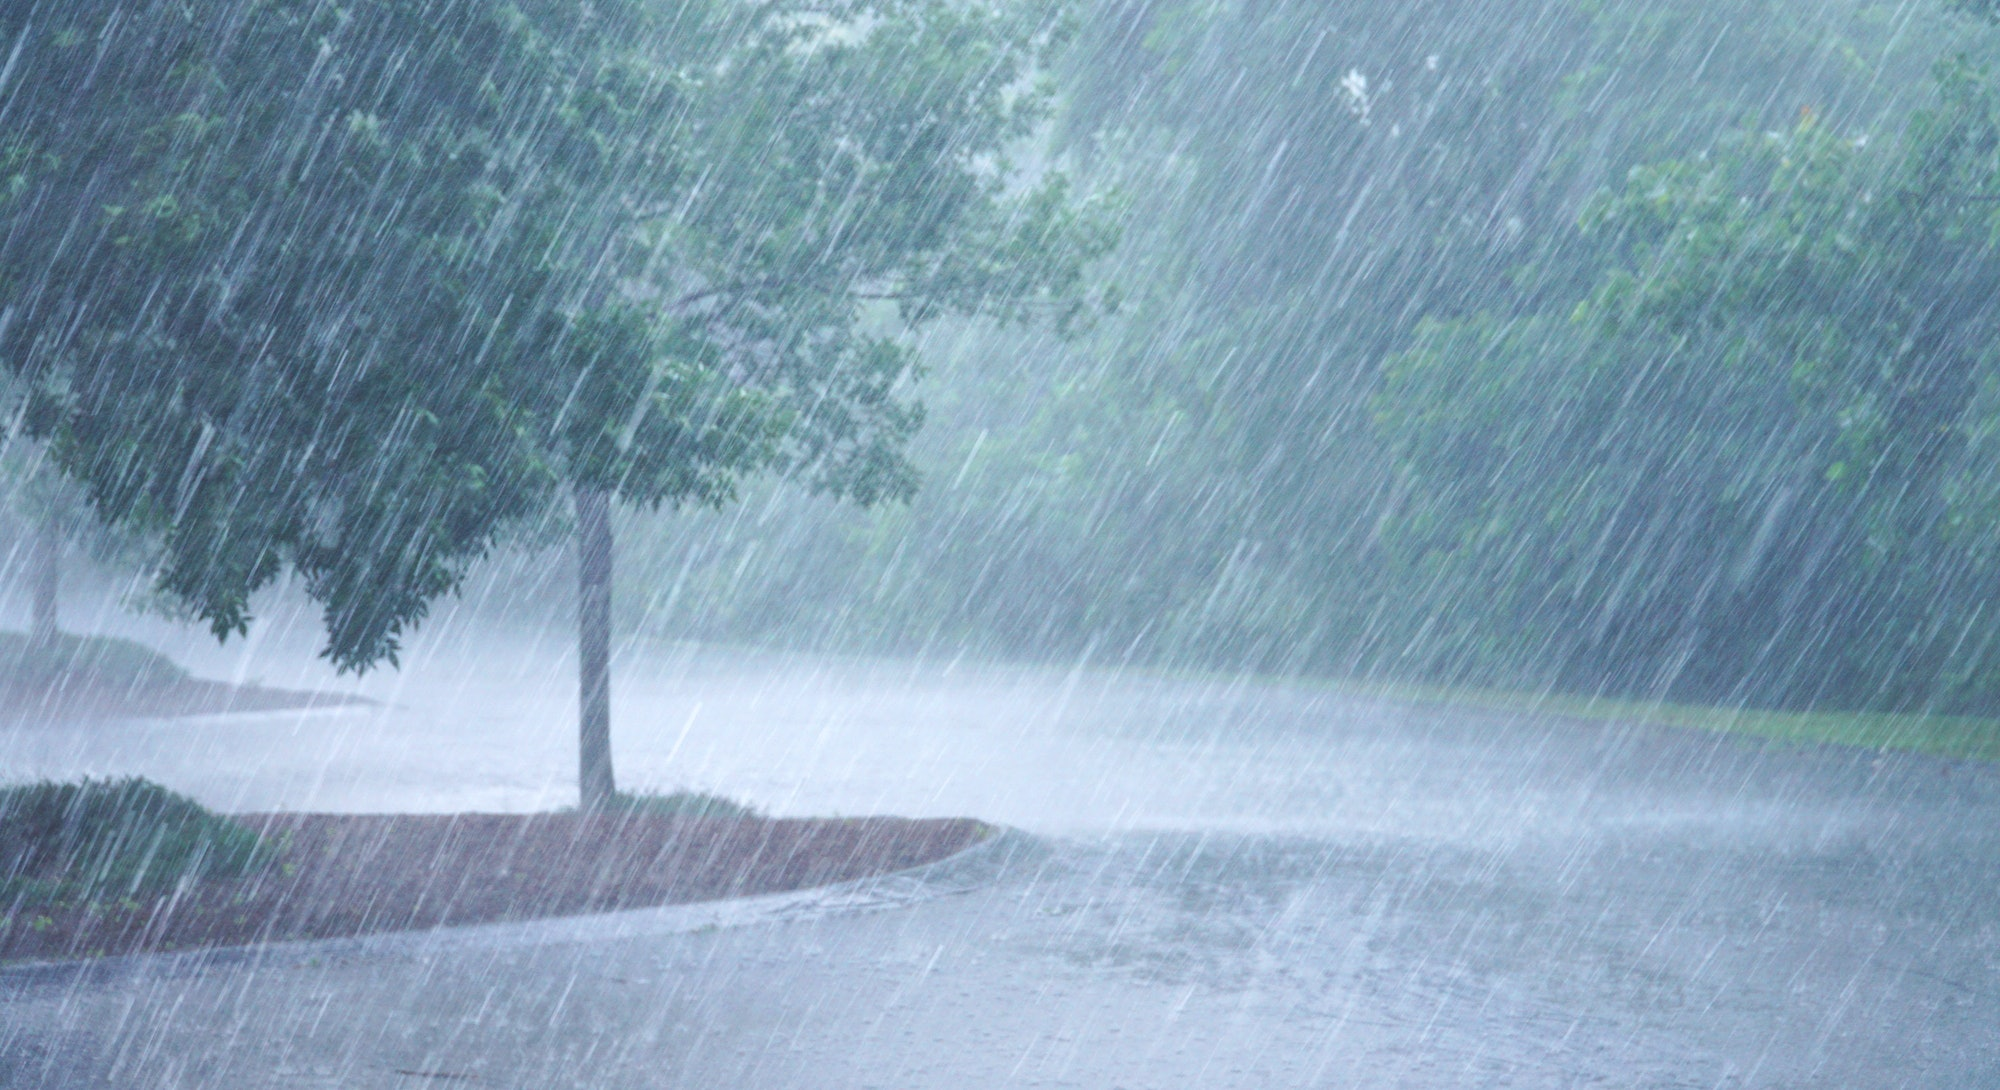 heavy rain and tree in the parking lots